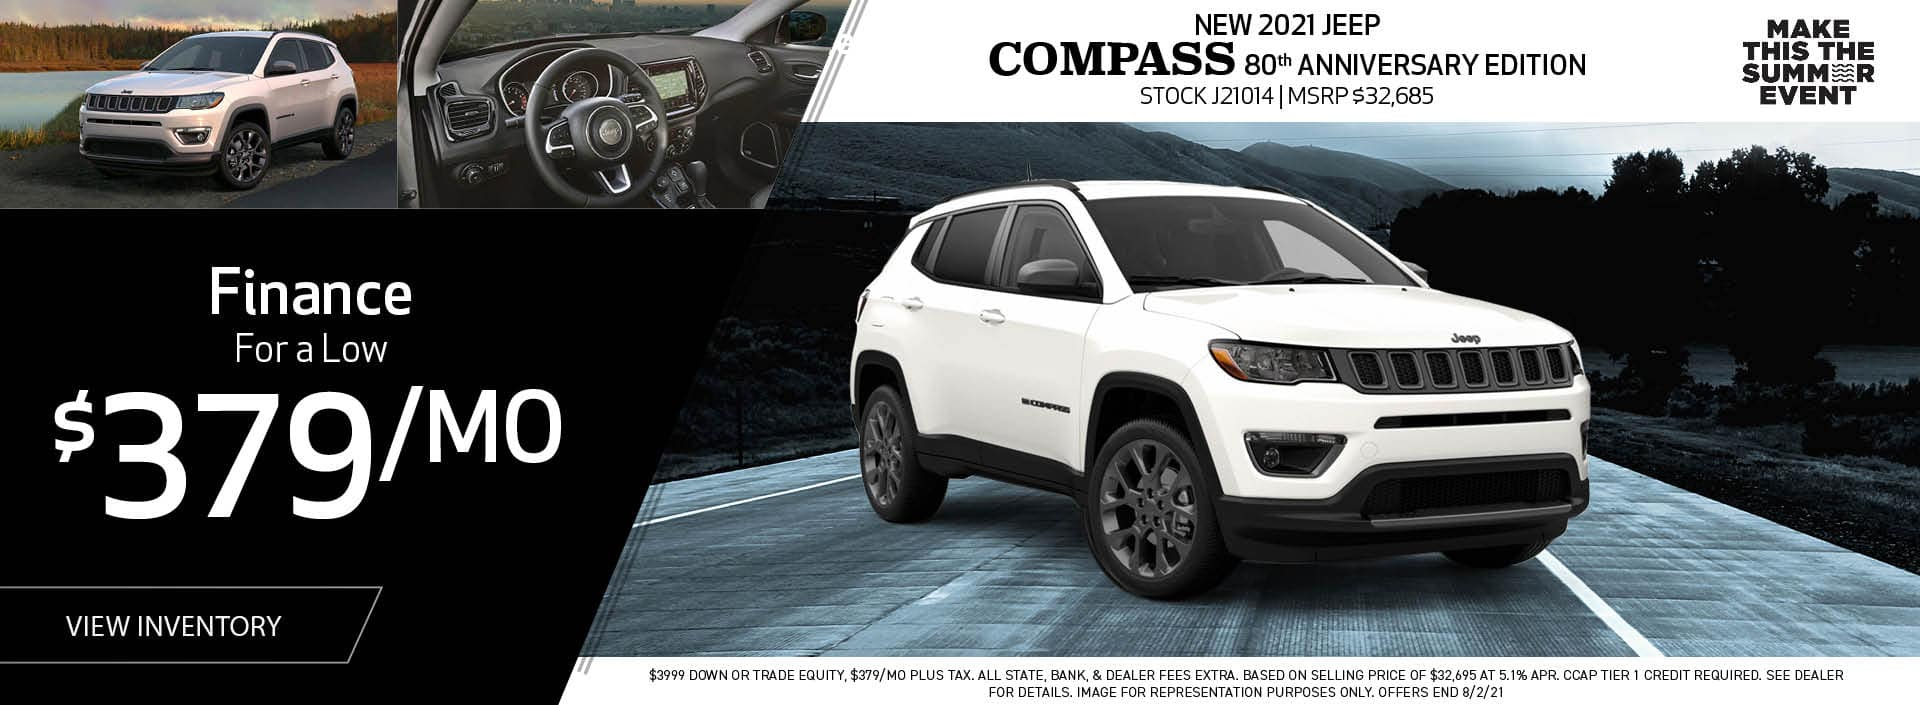 New 2021 Jeep Compass 80th Anniversary Edition